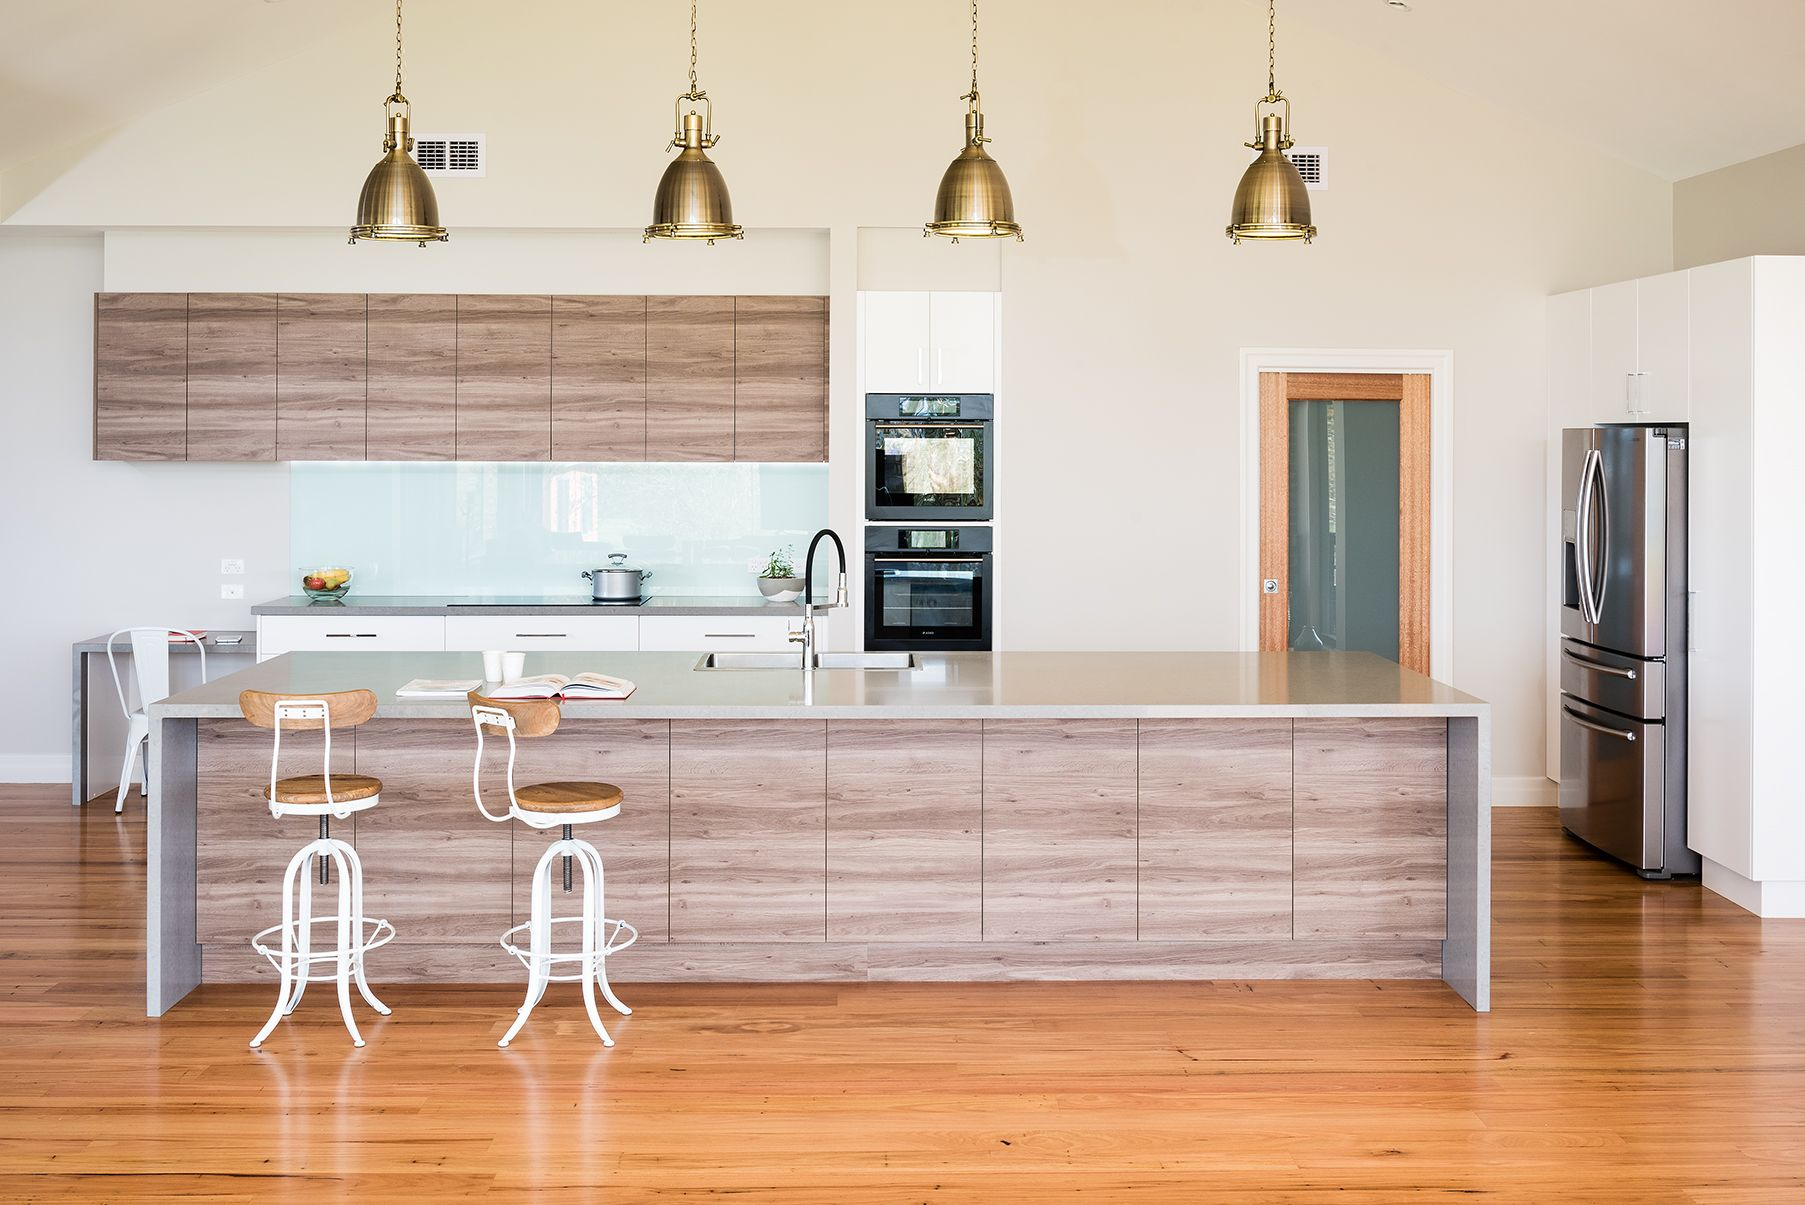 Current Trends In Kitchen Design Adorable Now Showing Current Kitchen Design Trends Are All About Textured Design Ideas